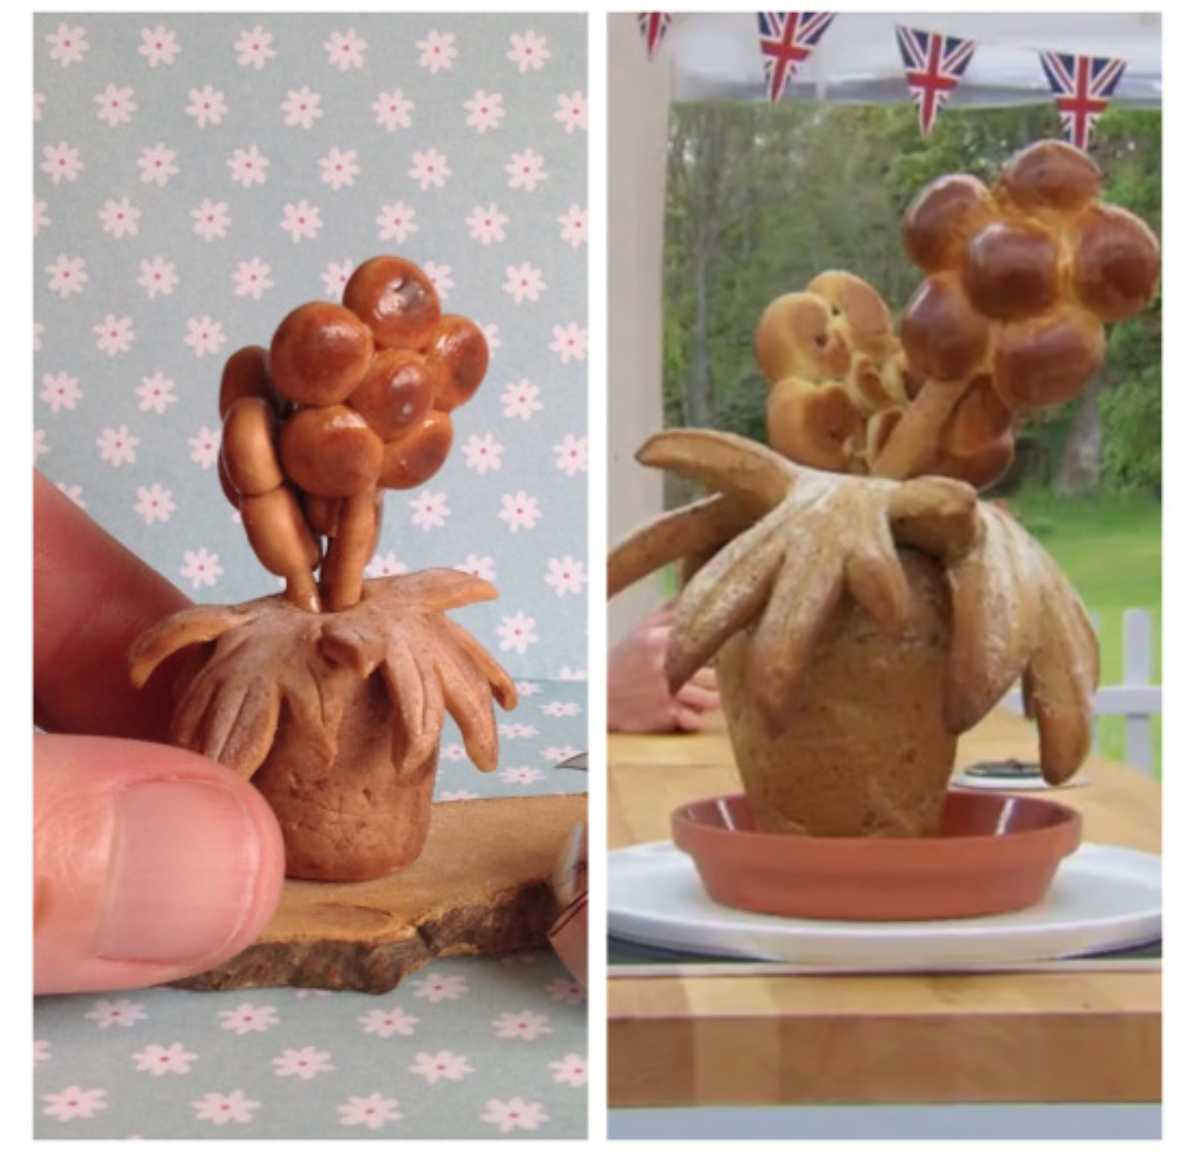 Ian's bread flowerpot sculpture before